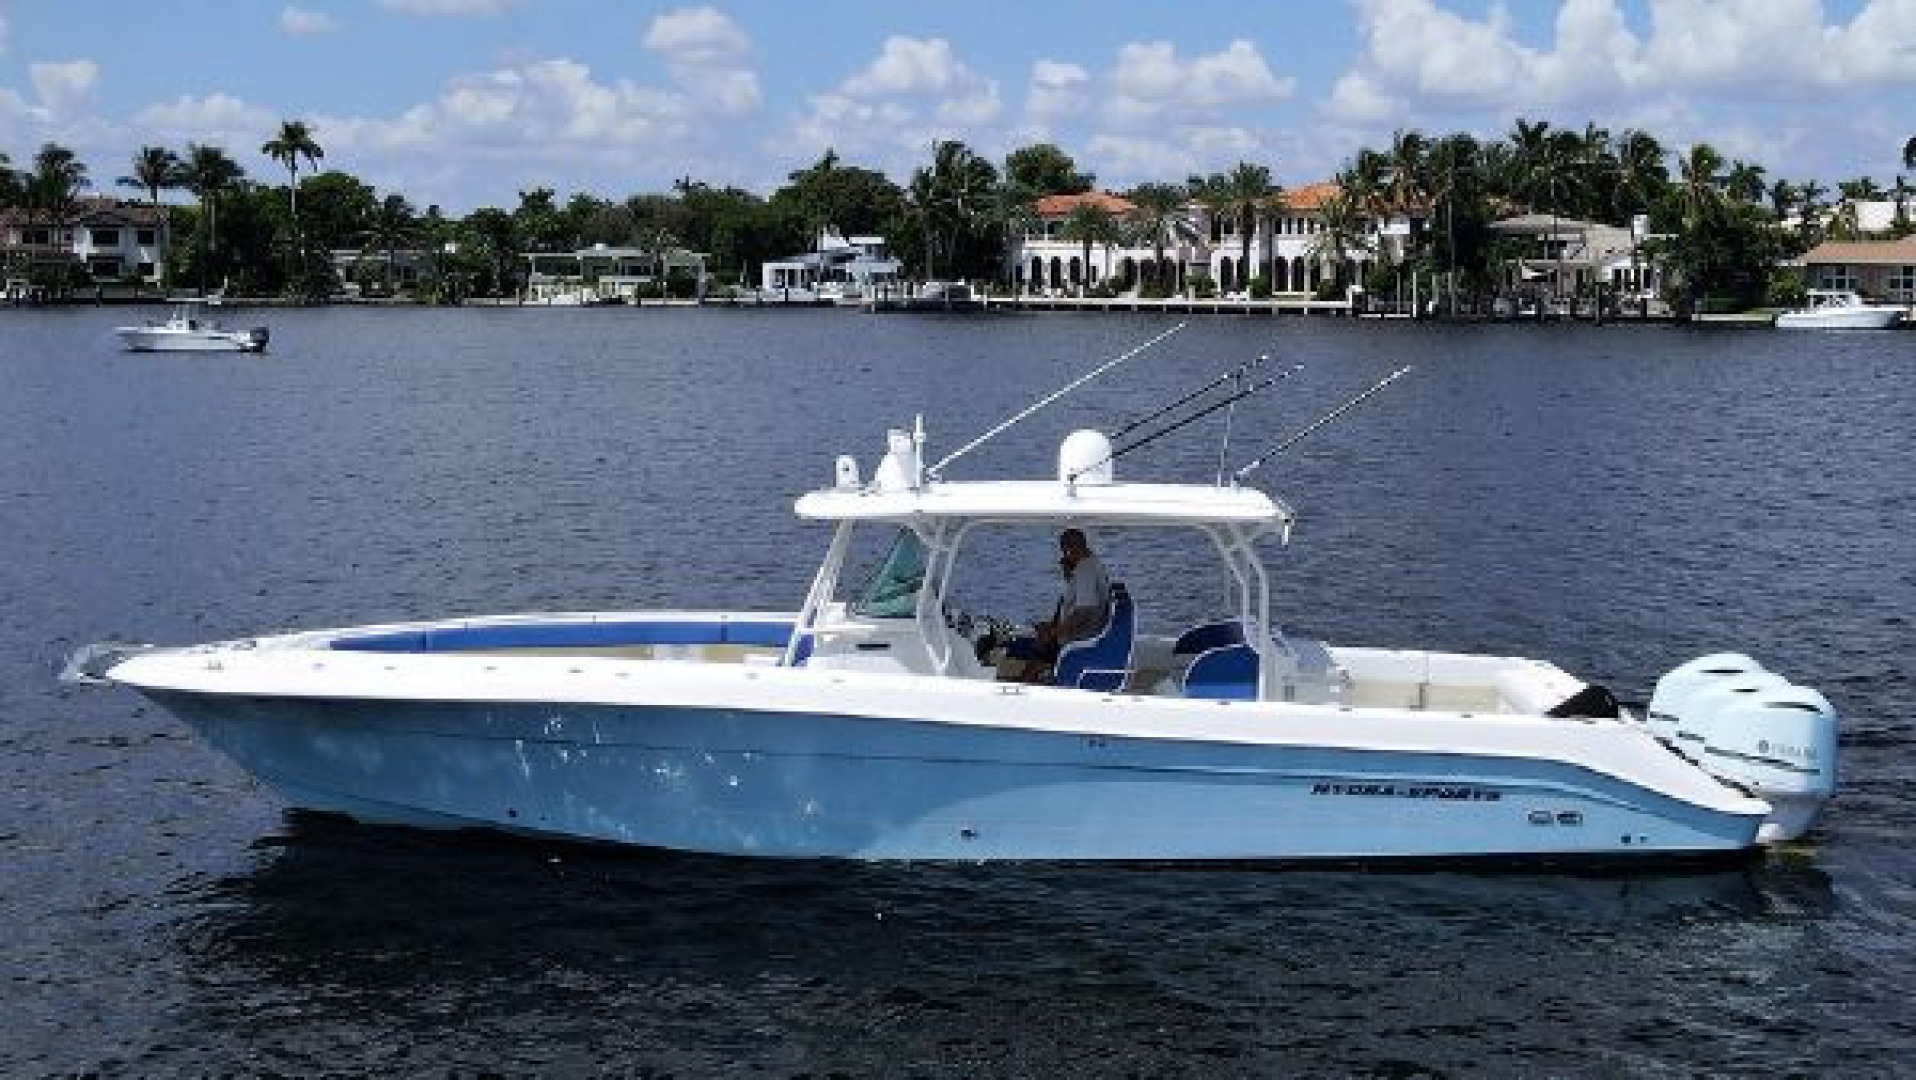 Hydra-Sports-42 Center Console 4200 SF 2011 -Fort Lauderdale-Florida-United States-1564152 | Thumbnail